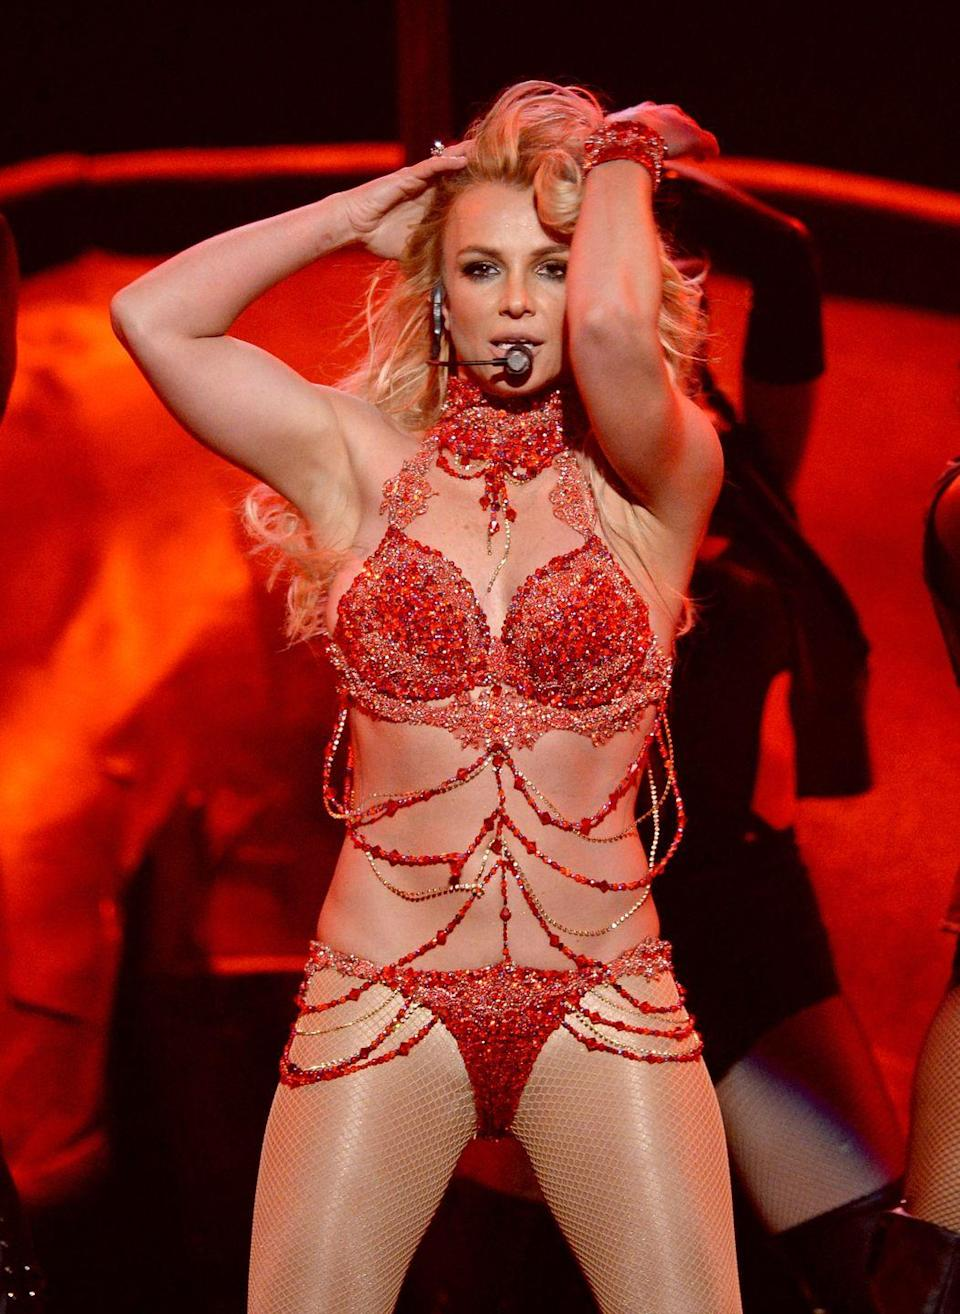 <p>Britney Spears performs at the 2016 Billboard Music Awards in Las Vegas, Nevada, on May 22, 2016.</p>